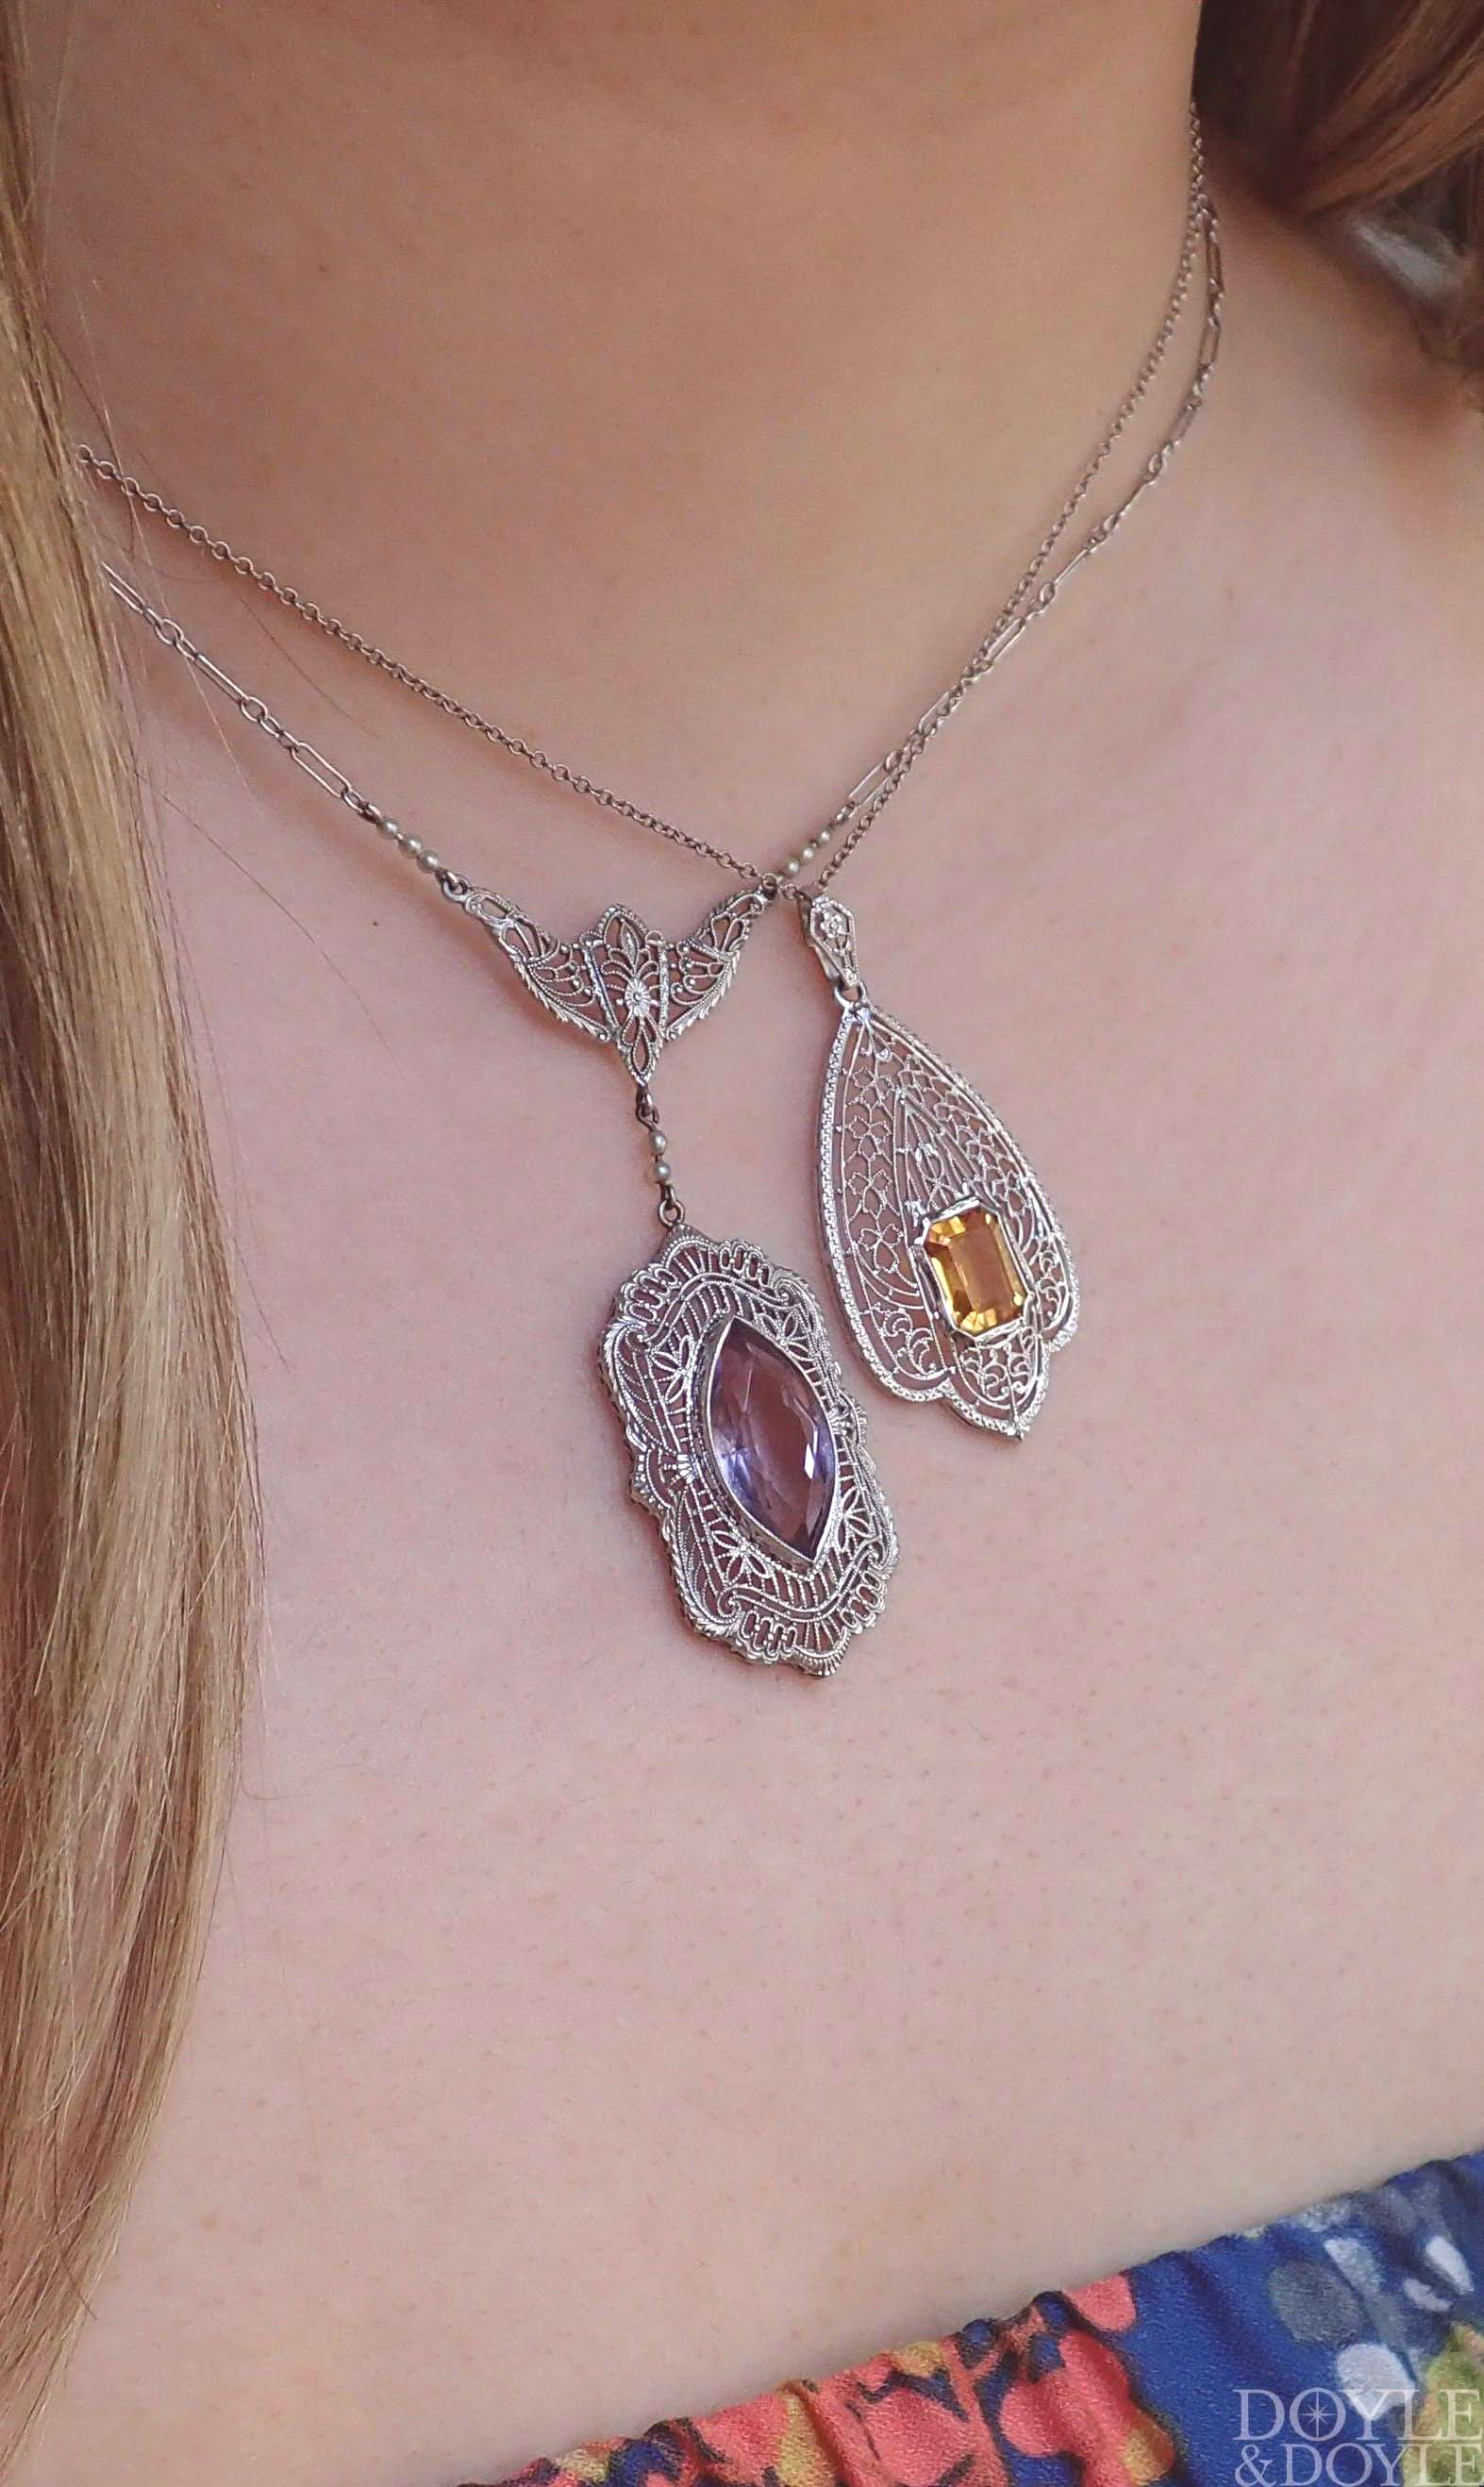 Two eye-catching, detailed filigree necklaces! A stunning vintage citrine necklace and an antique a